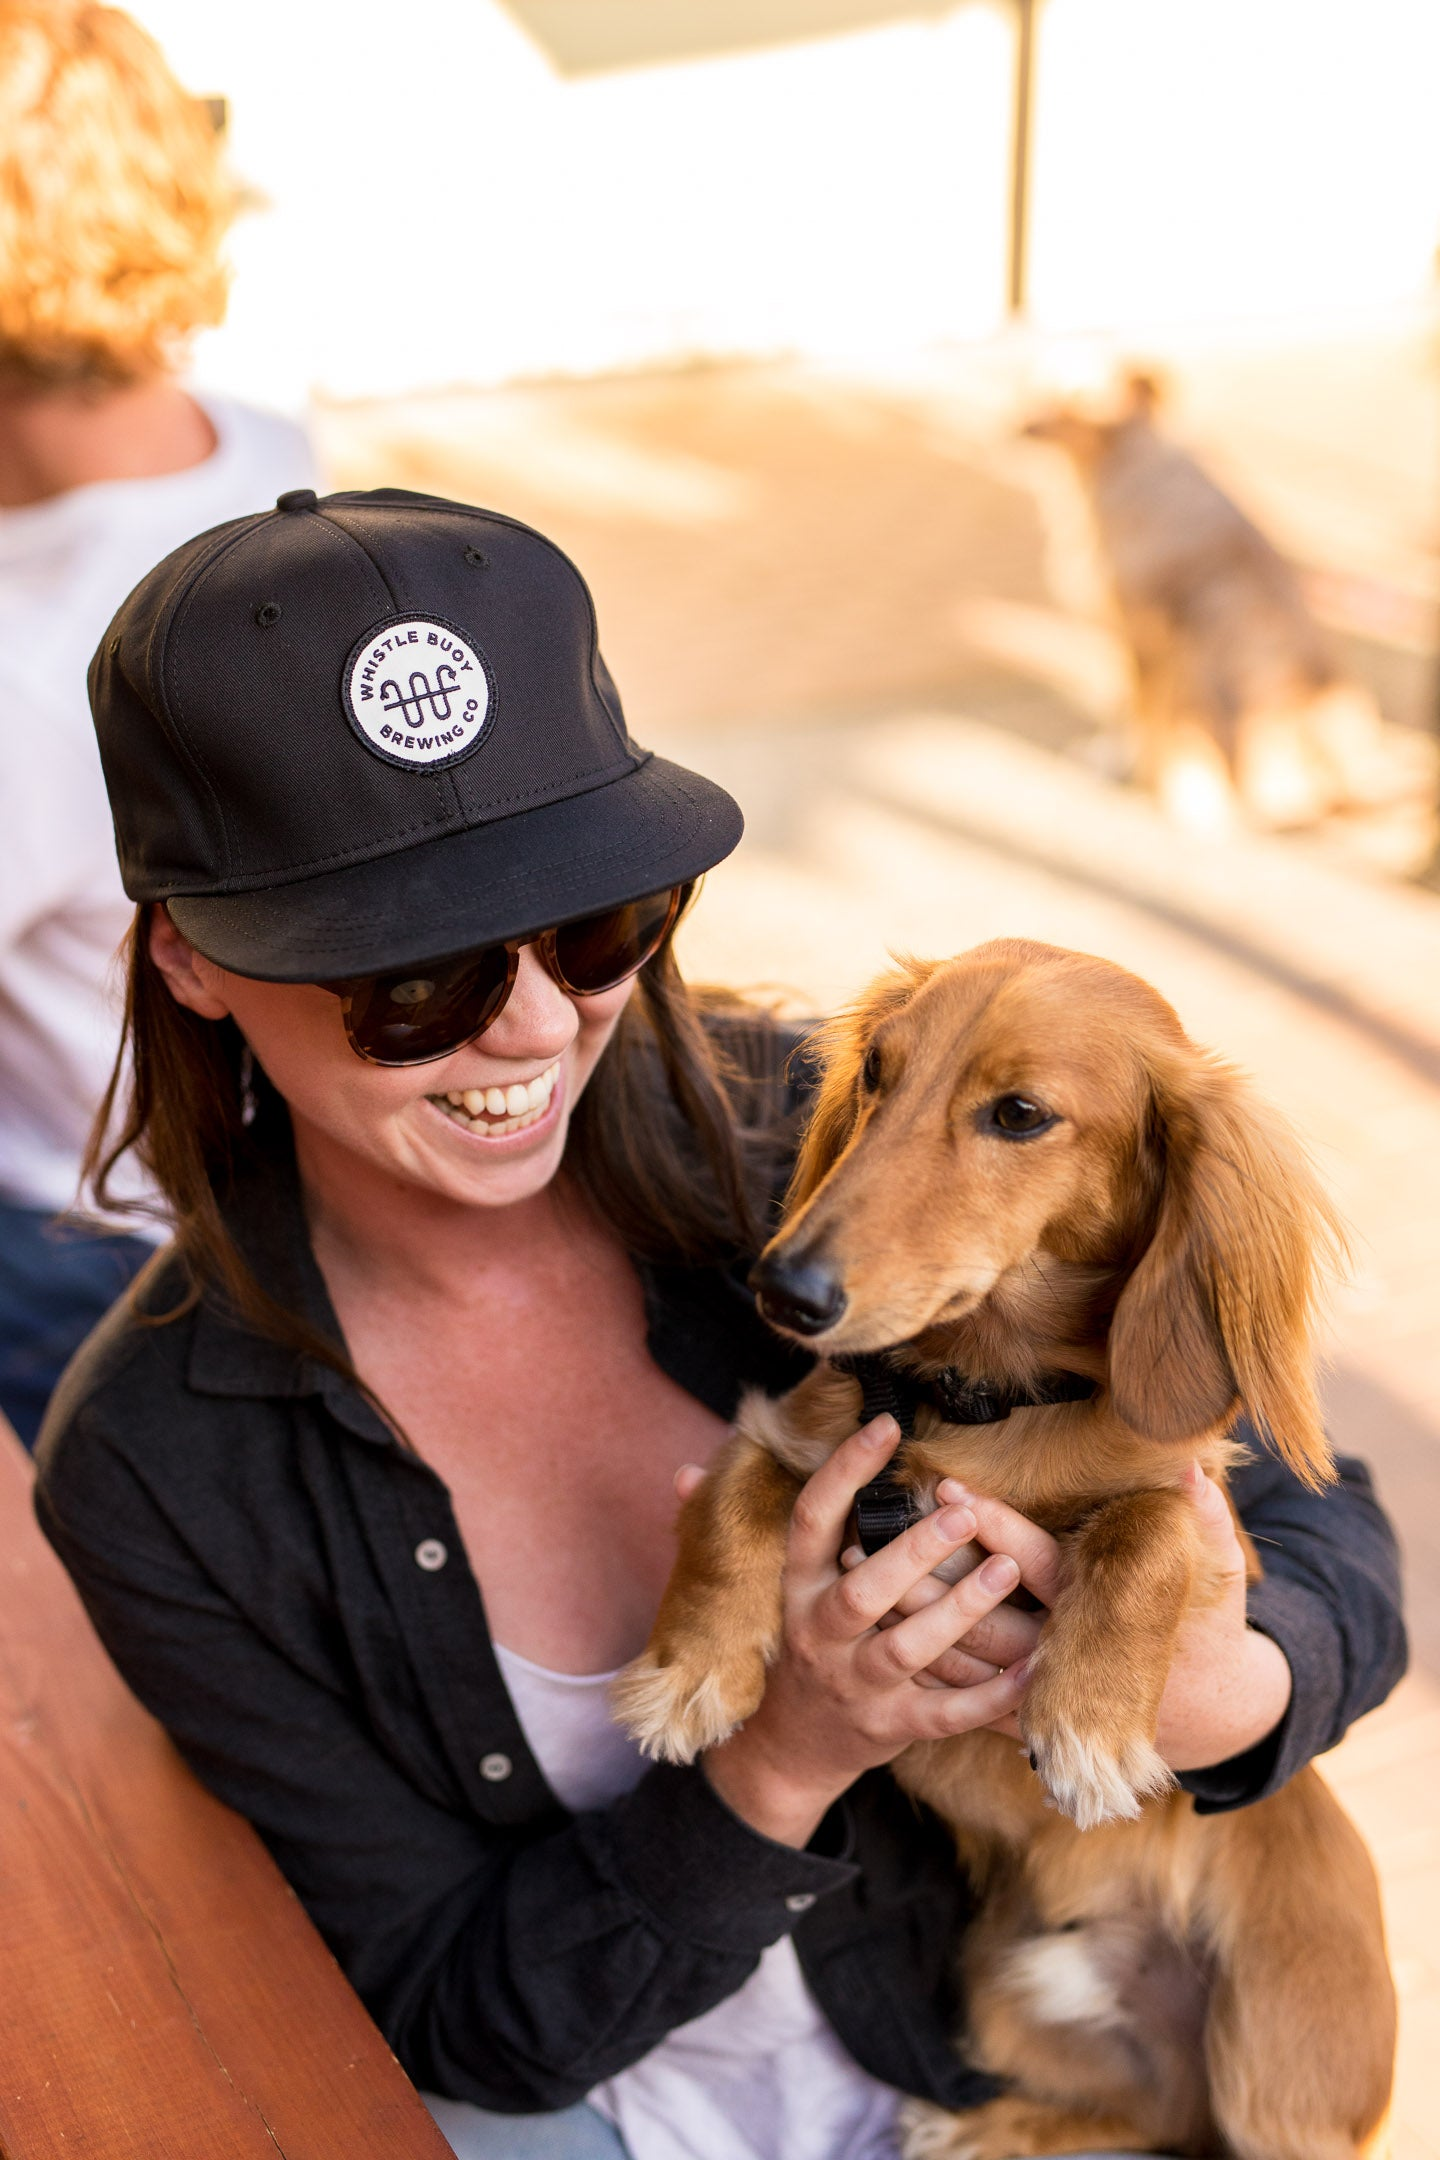 Whistle Buoy Game Cap worn by woman holding dog